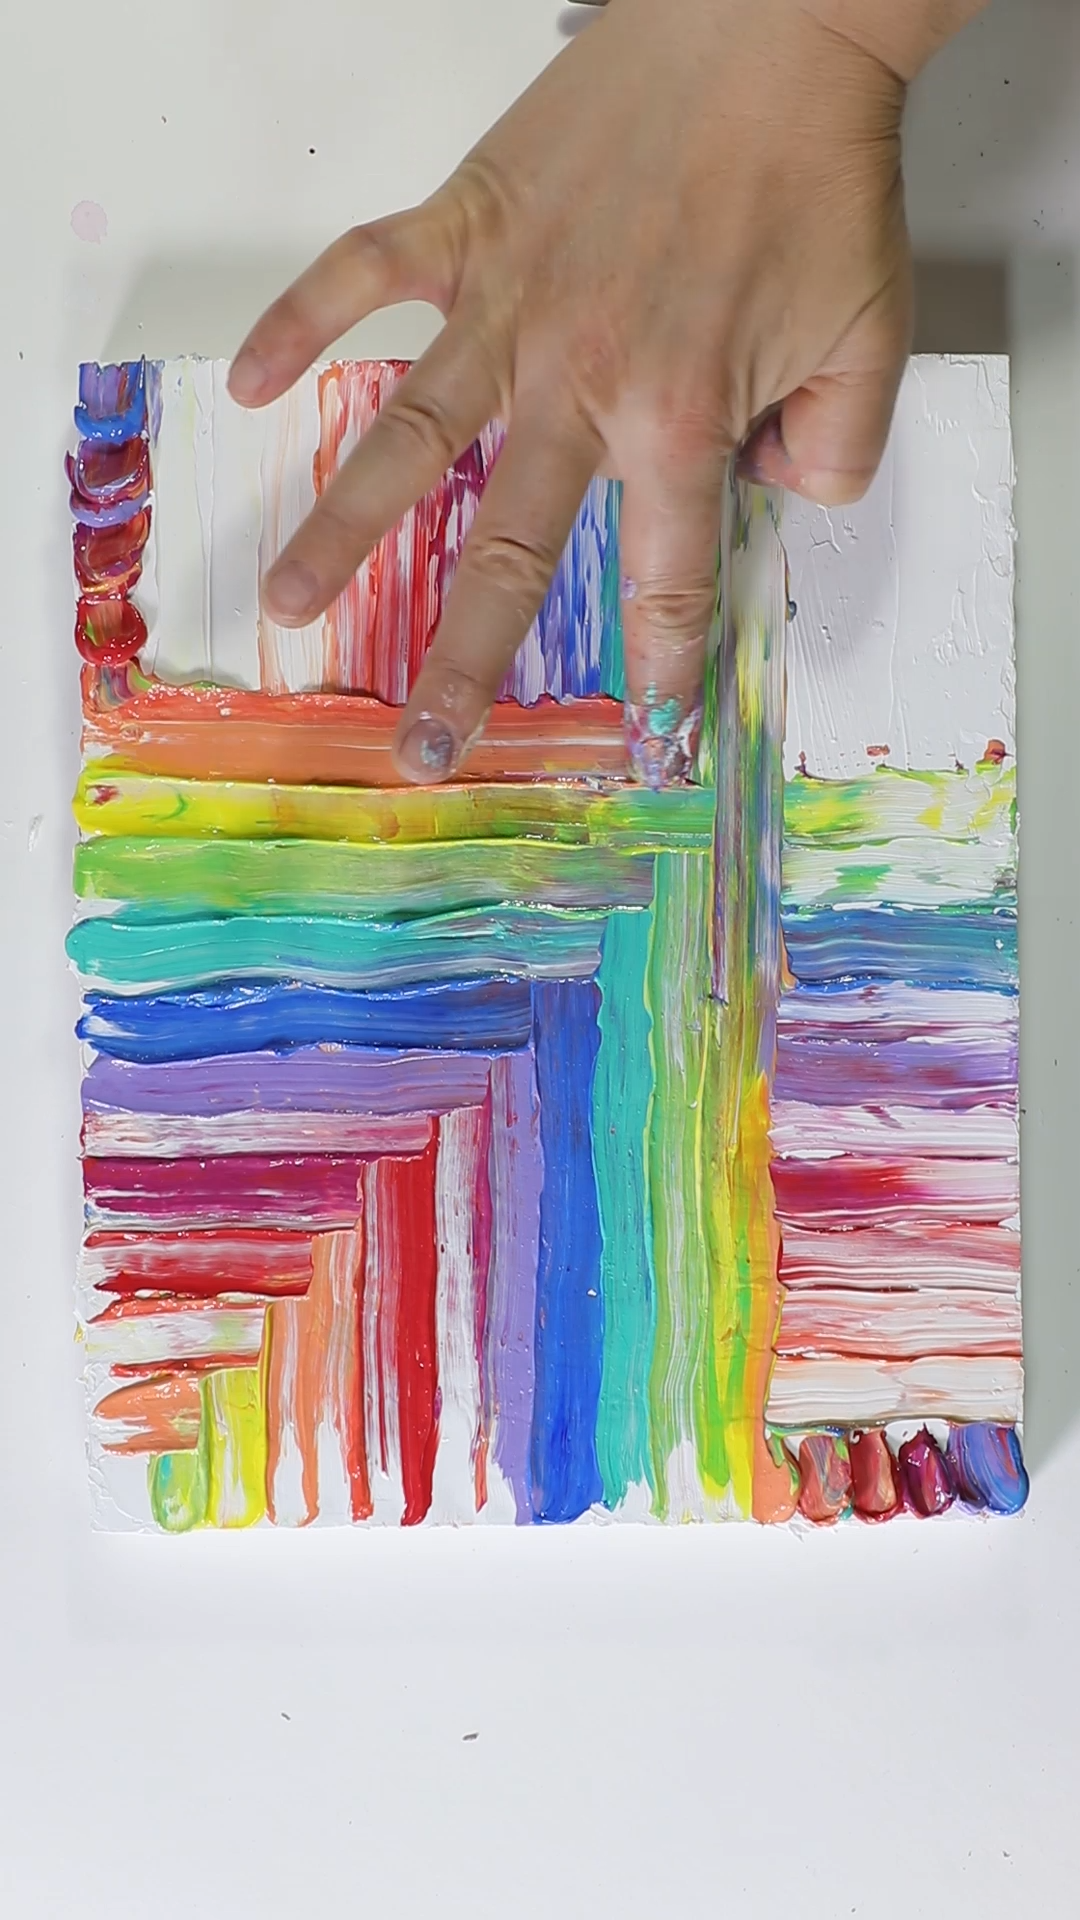 Mesmerizing Acrylic Finger Painting by Josie Lewis -   19 diy Art videos ideas